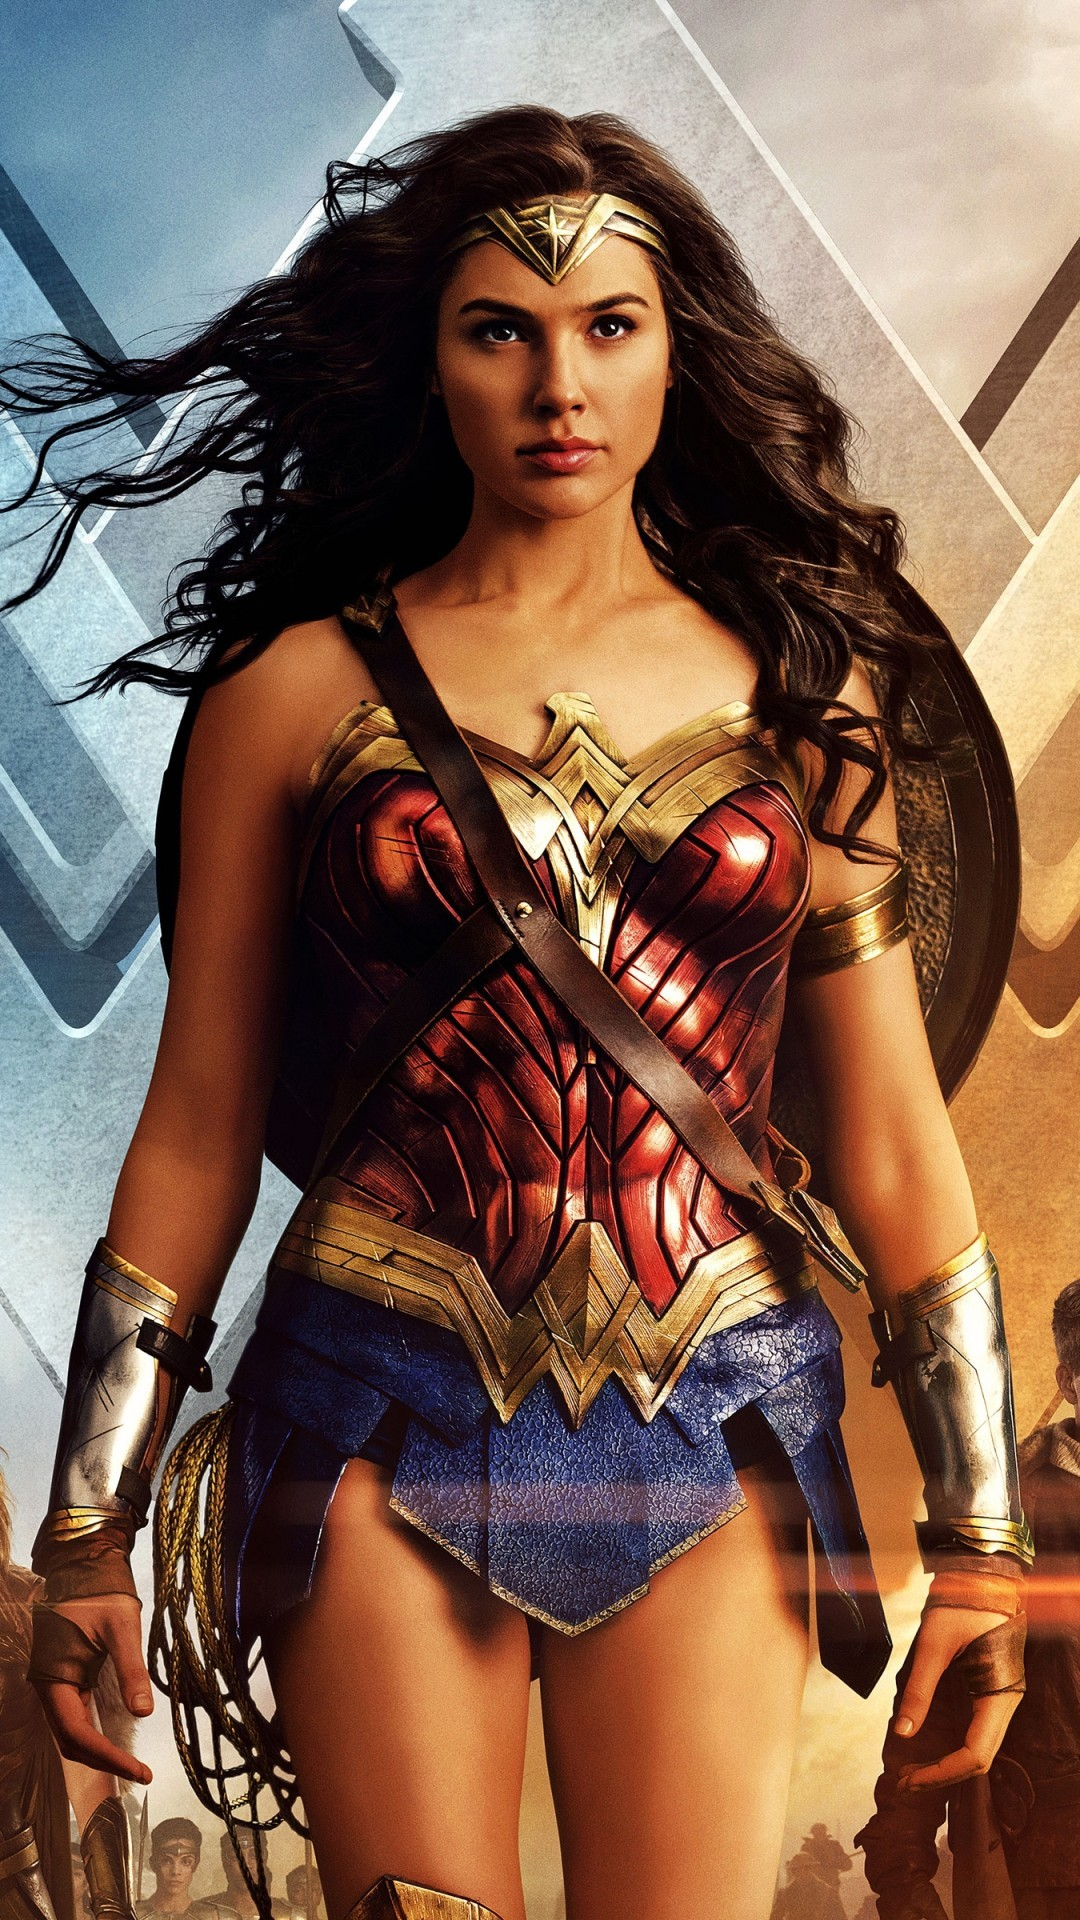 Wonder Woman Wallpaper Gal Gadot 2019 3D iPhone Wallpaper 1080x1920